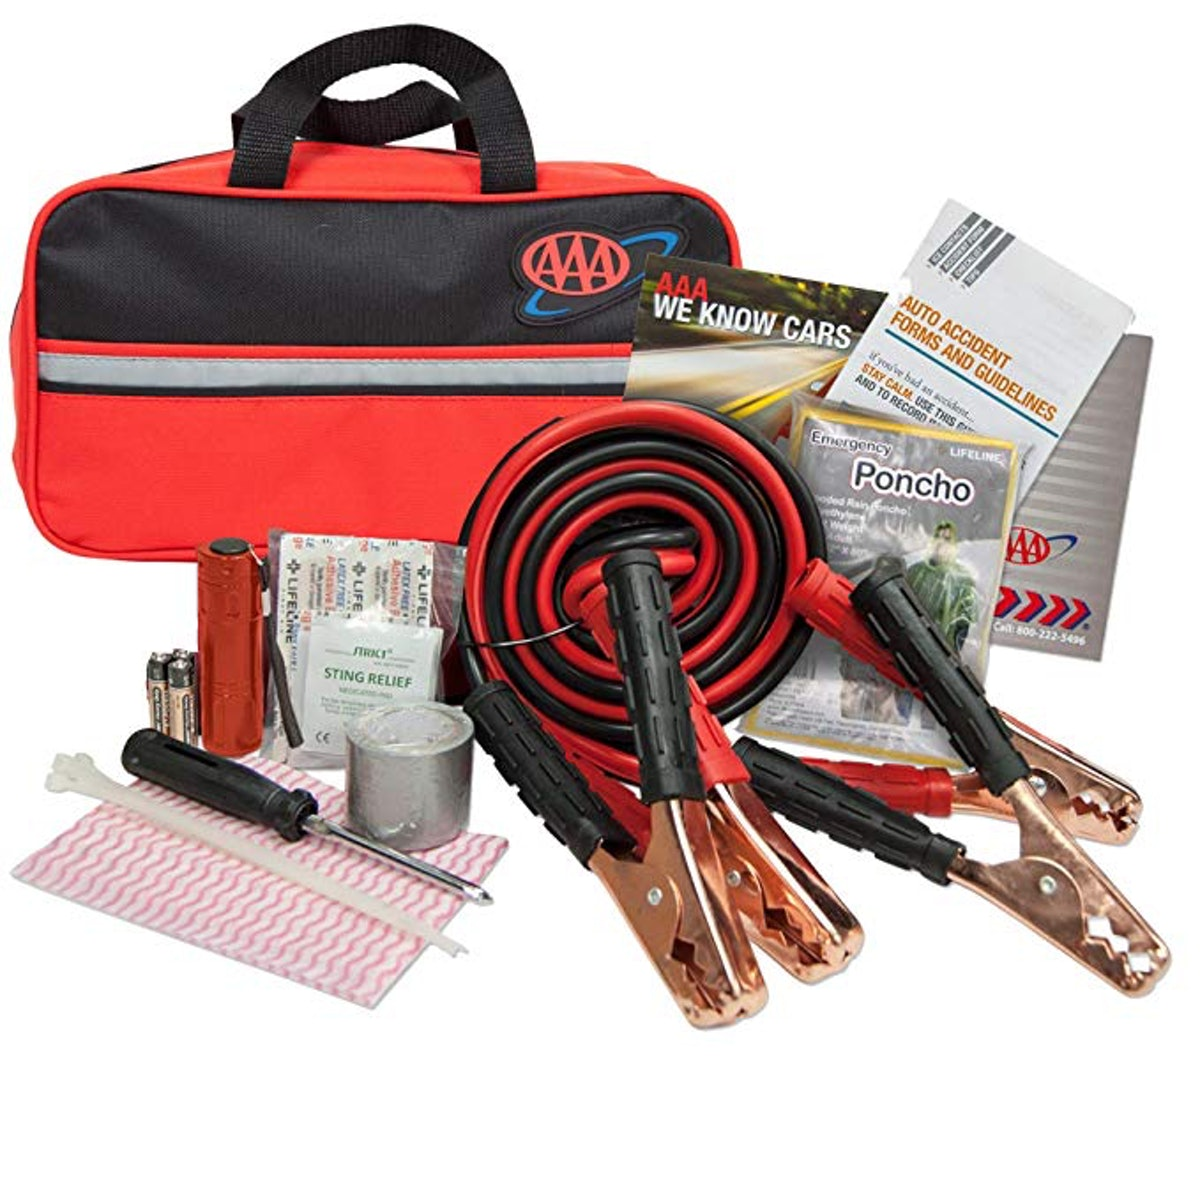 Lifeline 4330AAA Black AAA Premium Road, 42 Piece Emergency Car Jumper Cables, Flashlight and First ...